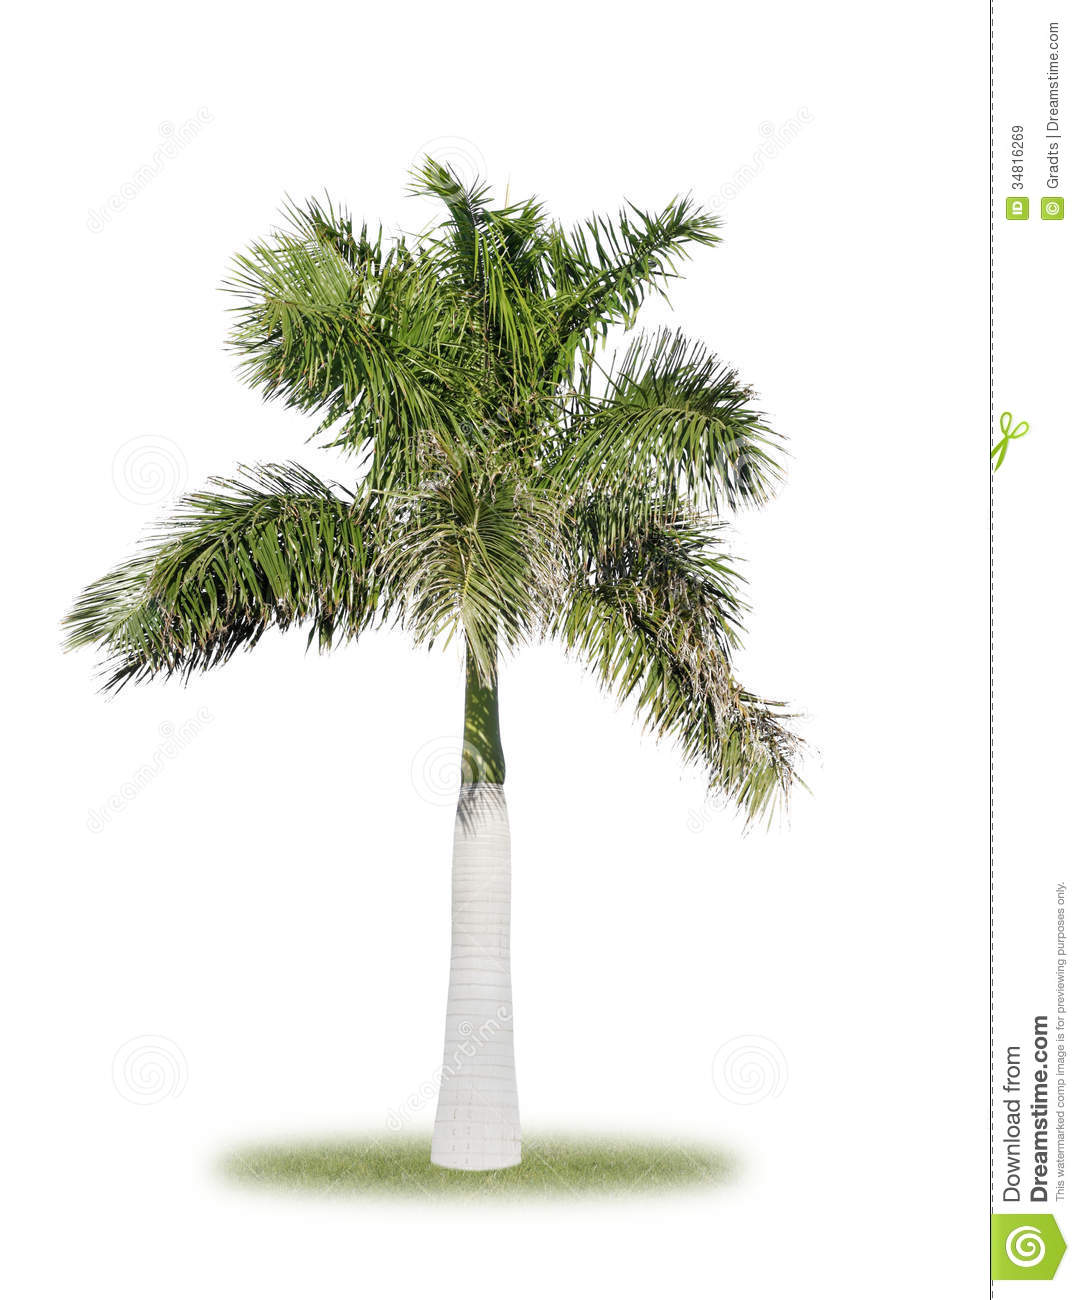 Royal Palm Royalty Free Stock Images - Image: 34816269